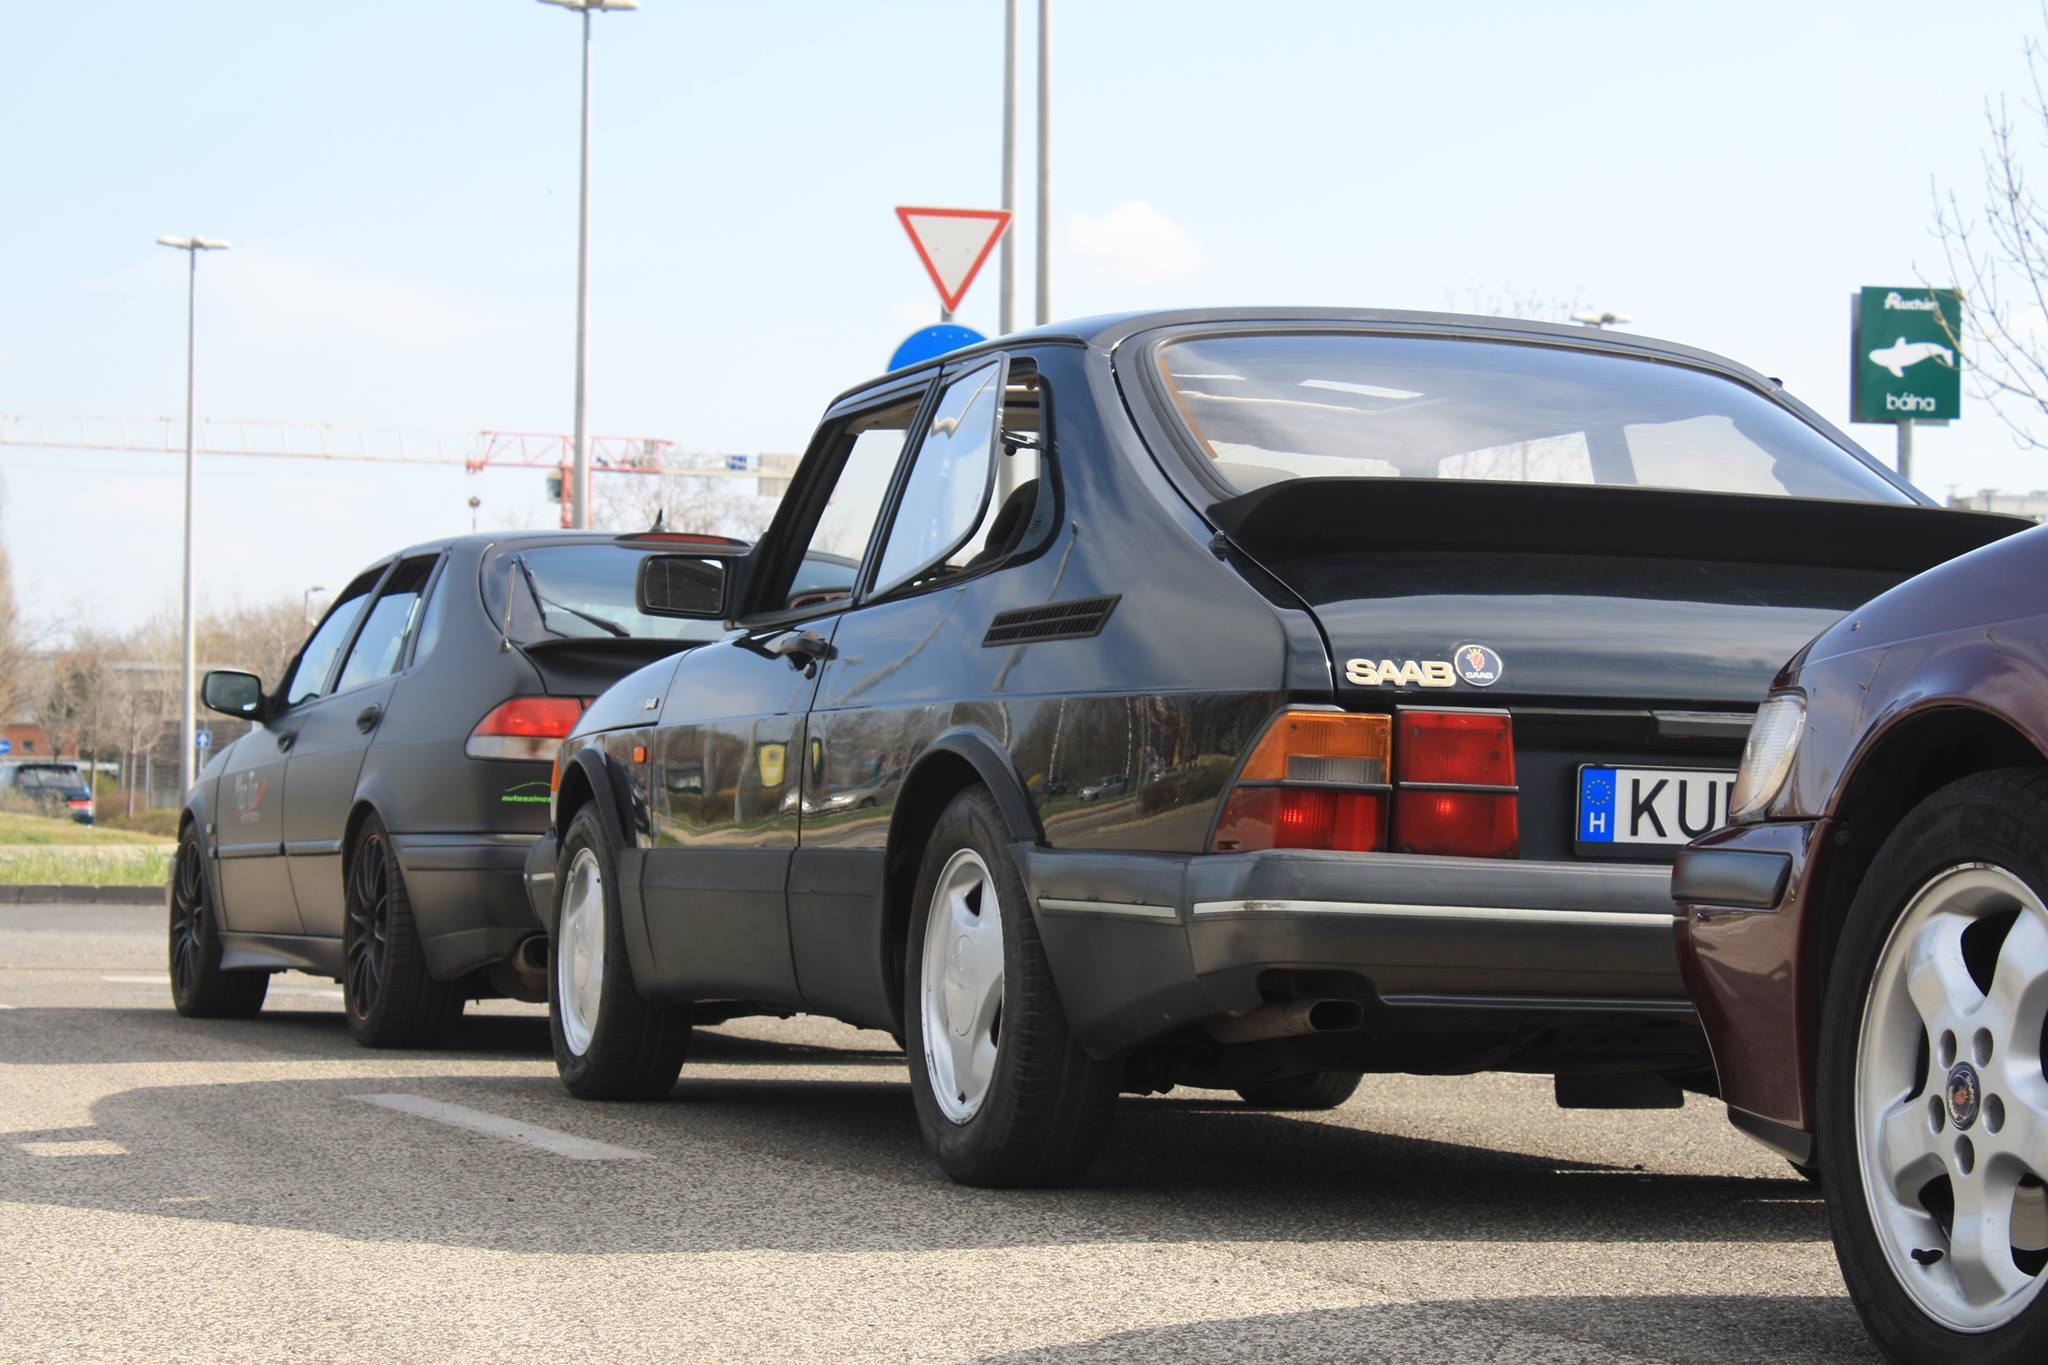 5,595 registered SAABs in Hungary